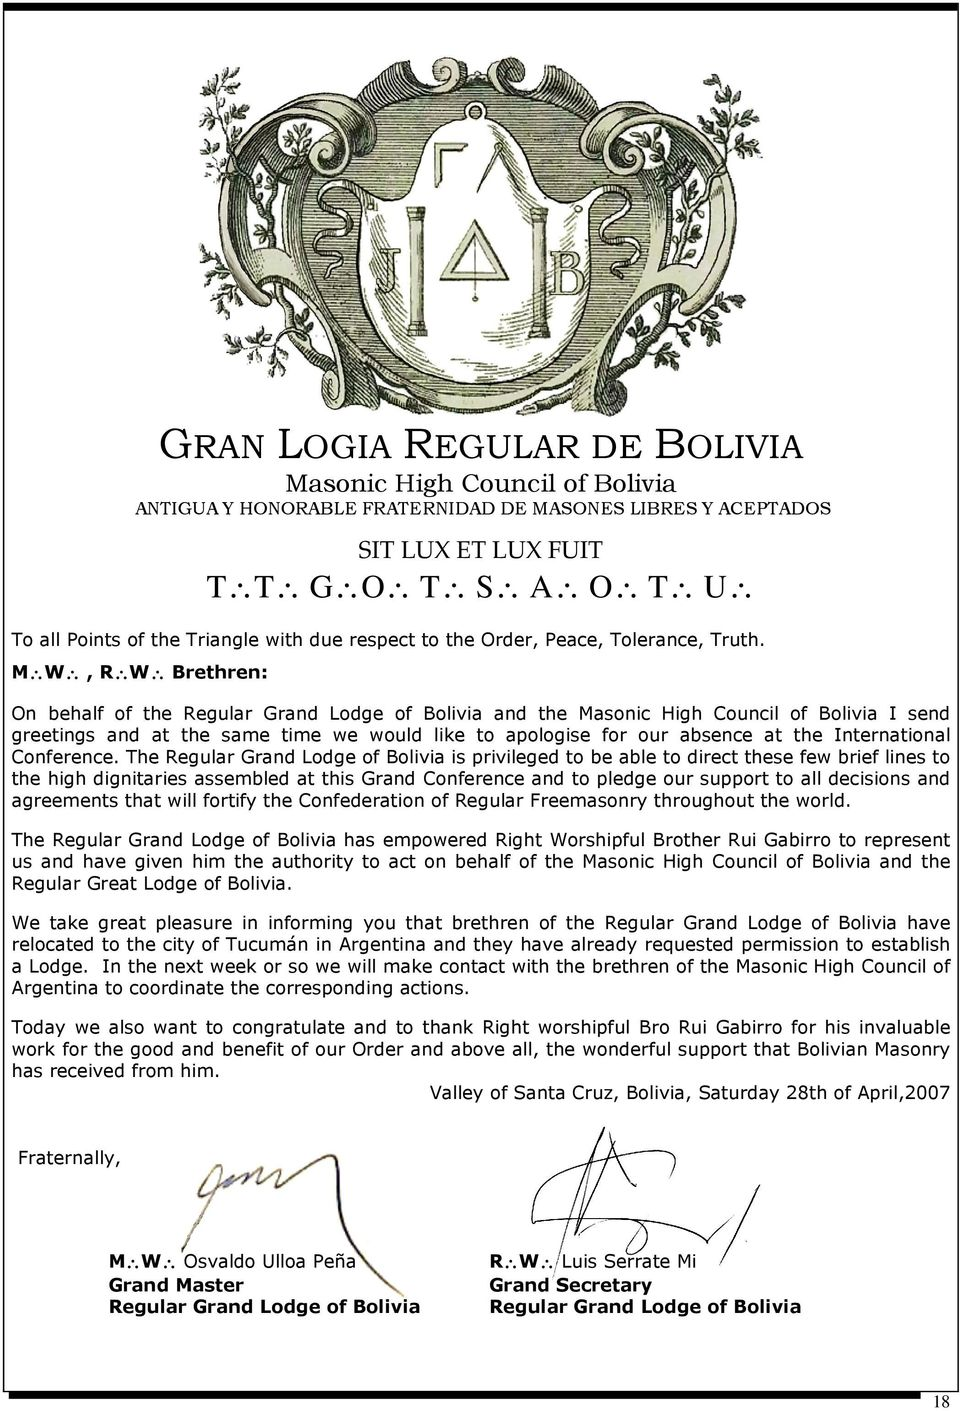 M W, R W Brethren: On behalf of the Regular Grand Lodge of Bolivia and the Masonic High Council of Bolivia I send greetings and at the same time we would like to apologise for our absence at the